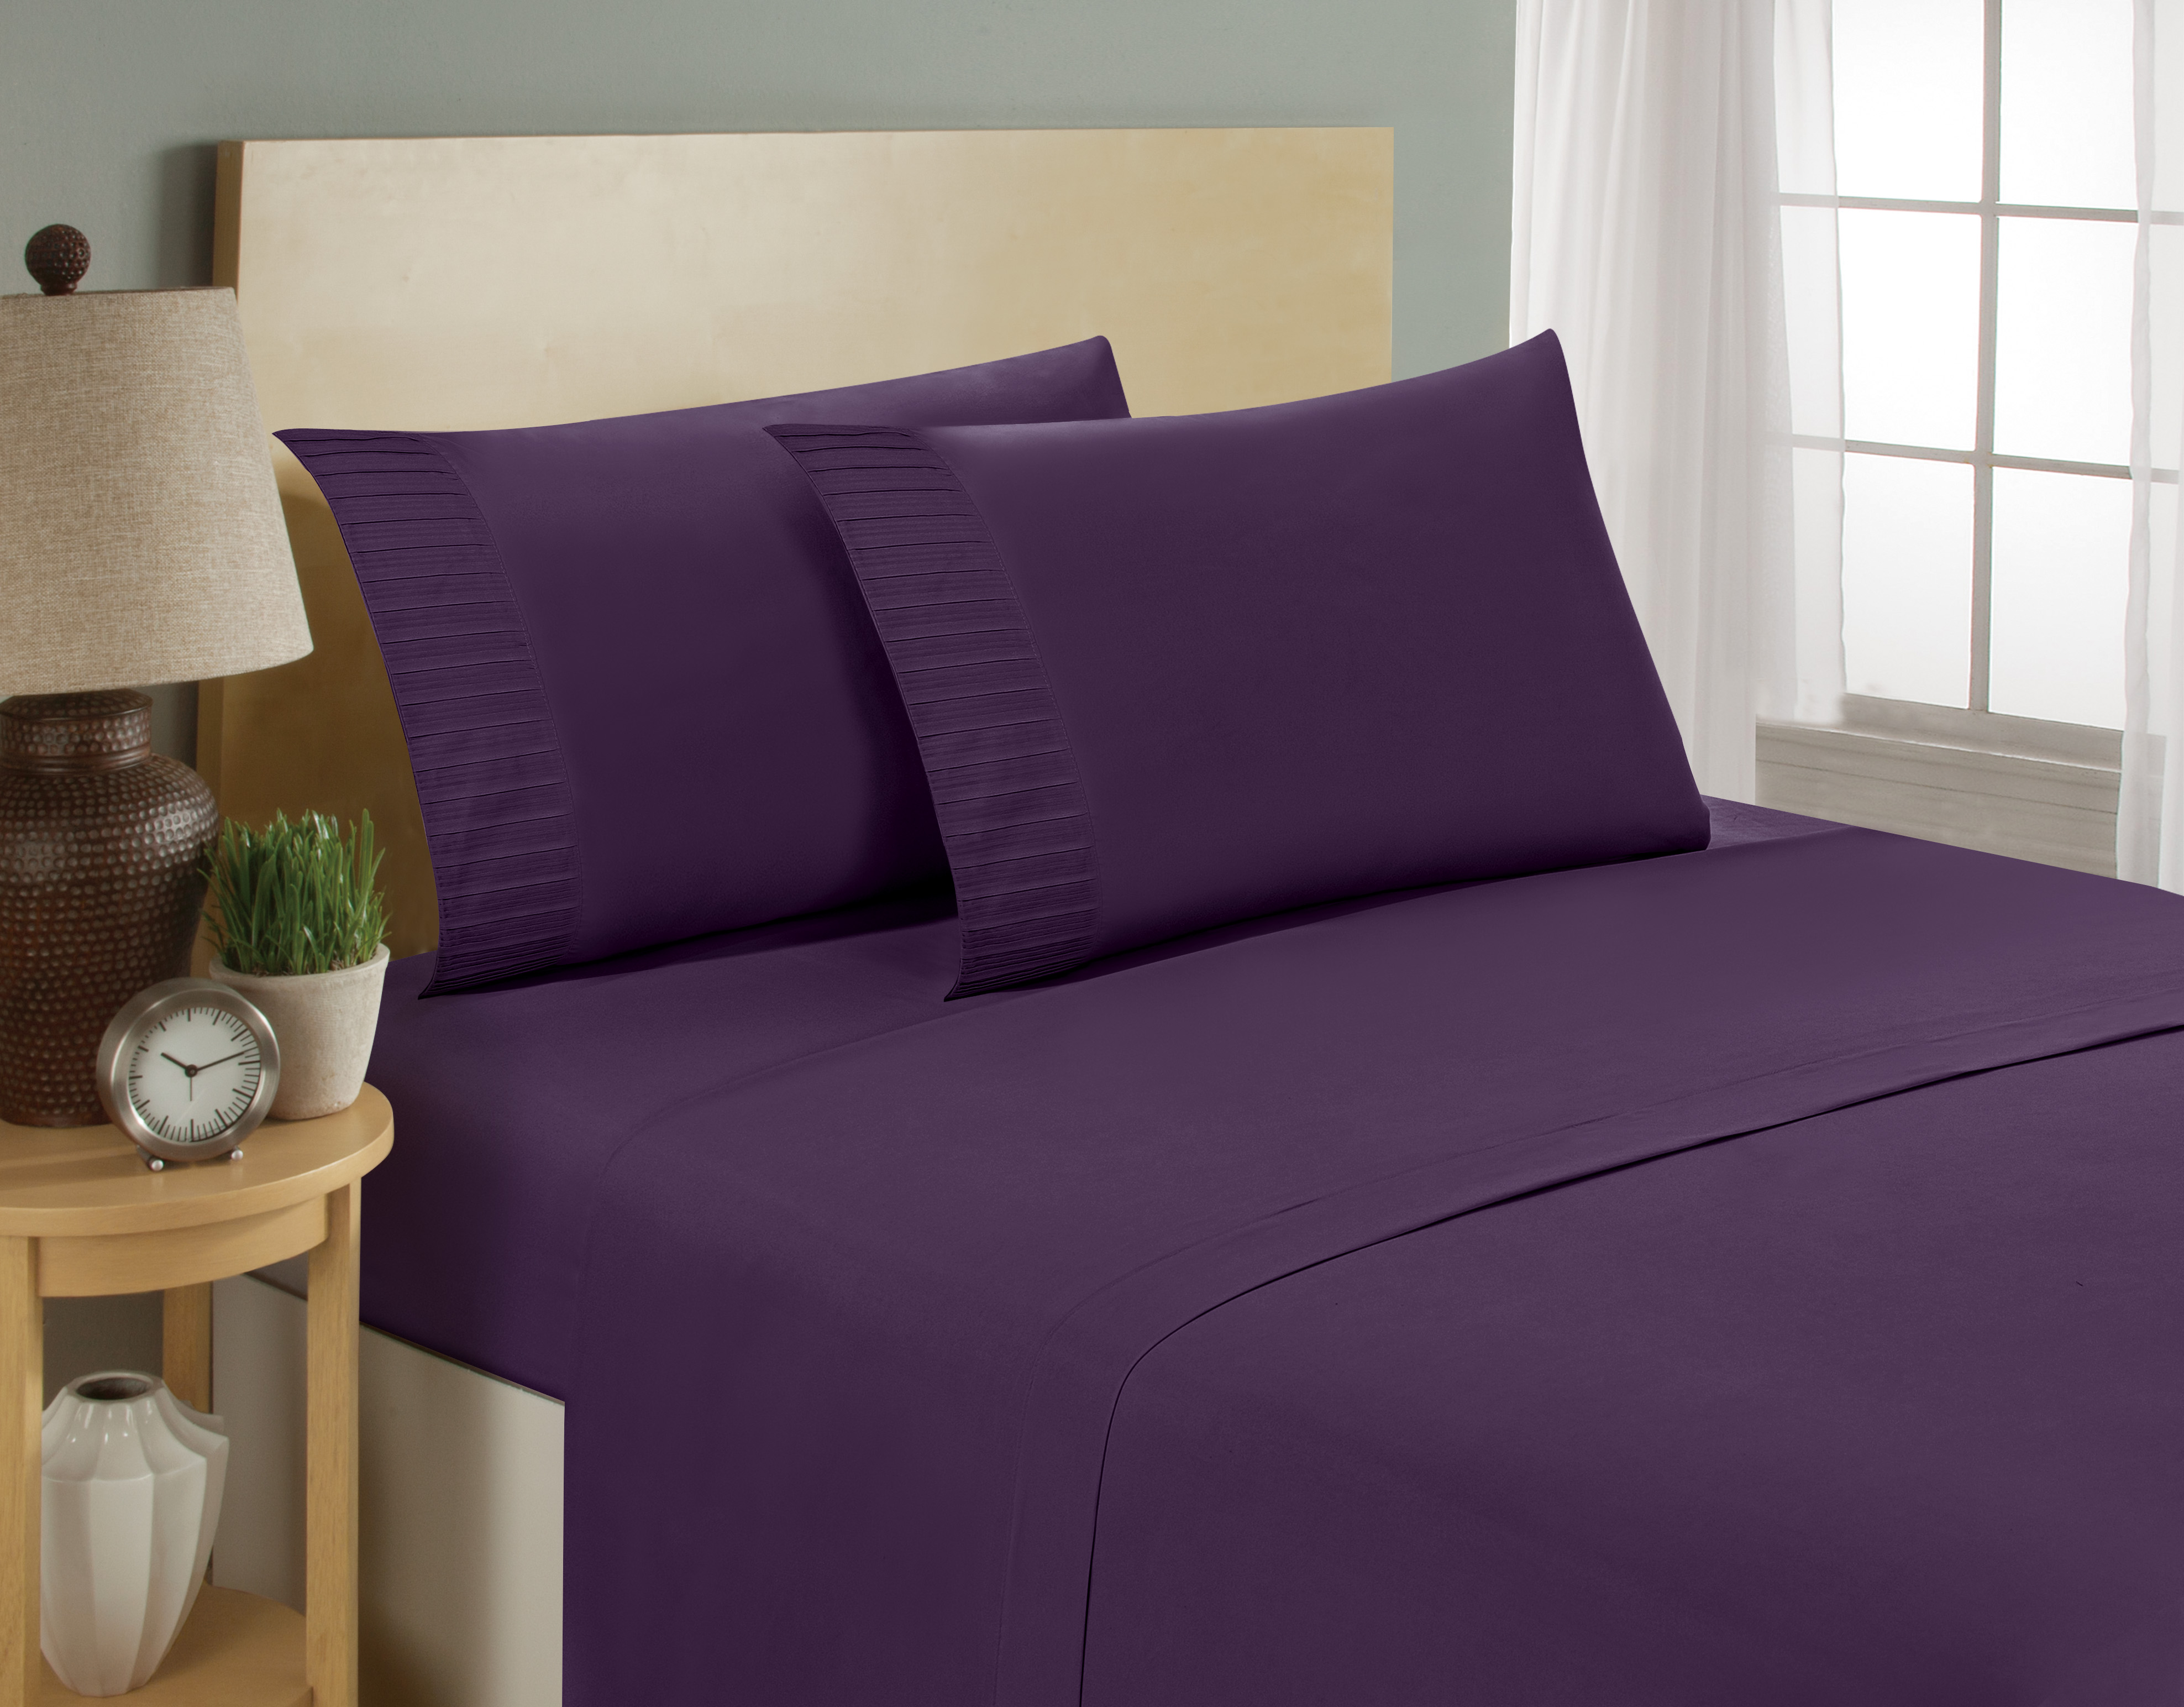 aJOY World Pleated 1800 Series Ultra-soft Premium Microfiber Sheet Set - Queen, Eggplant